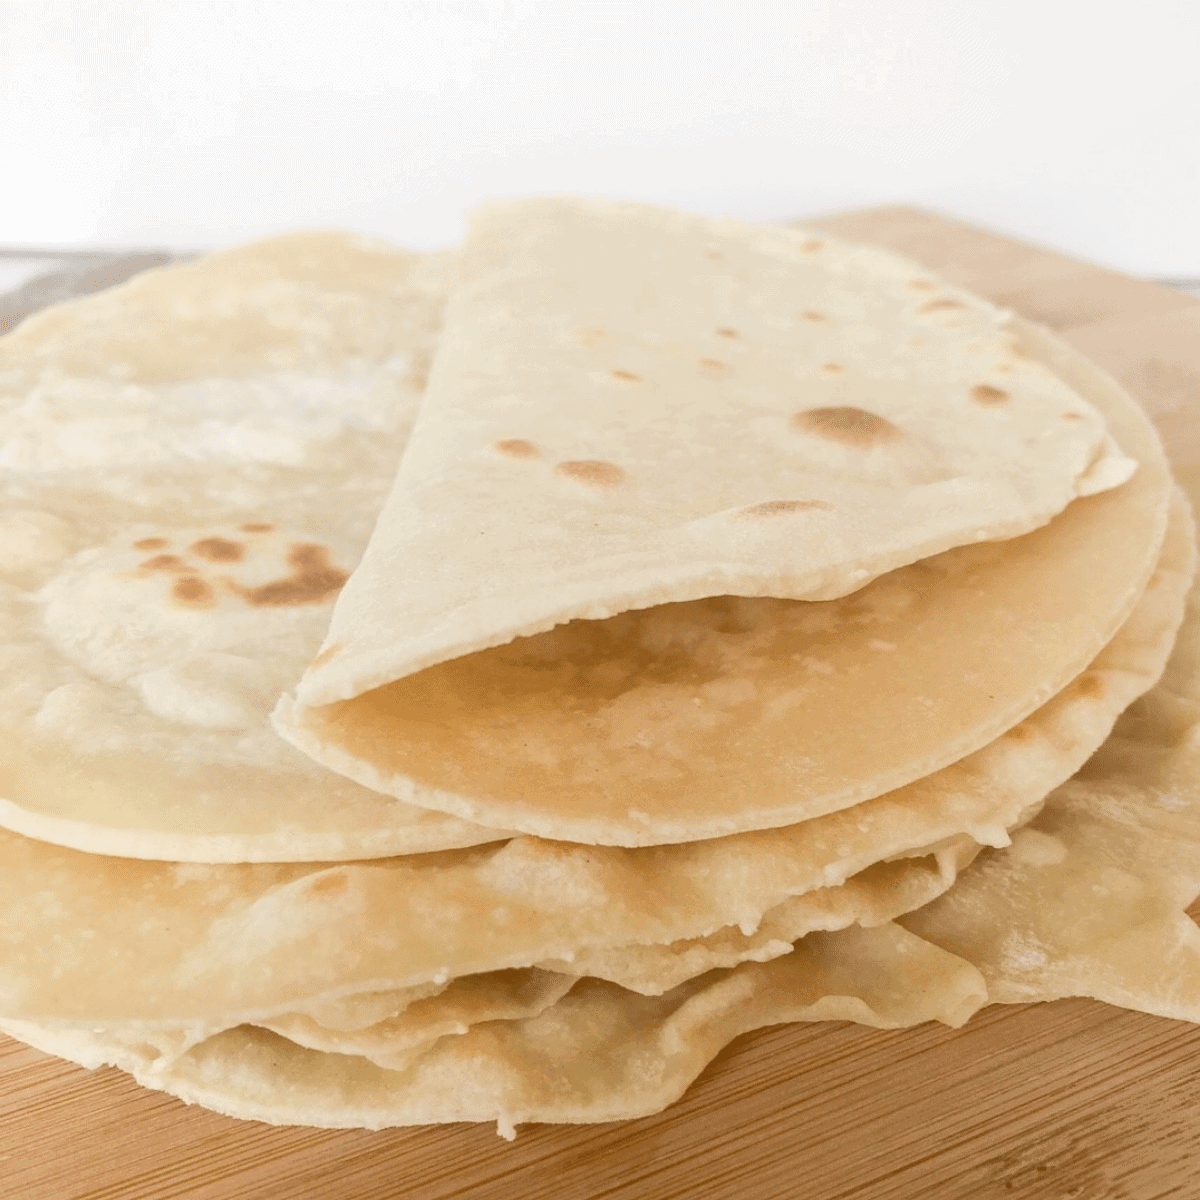 Soft and pliable homemade 3 ingredient flatbread with no yeast, stacked on a wooden cutting board